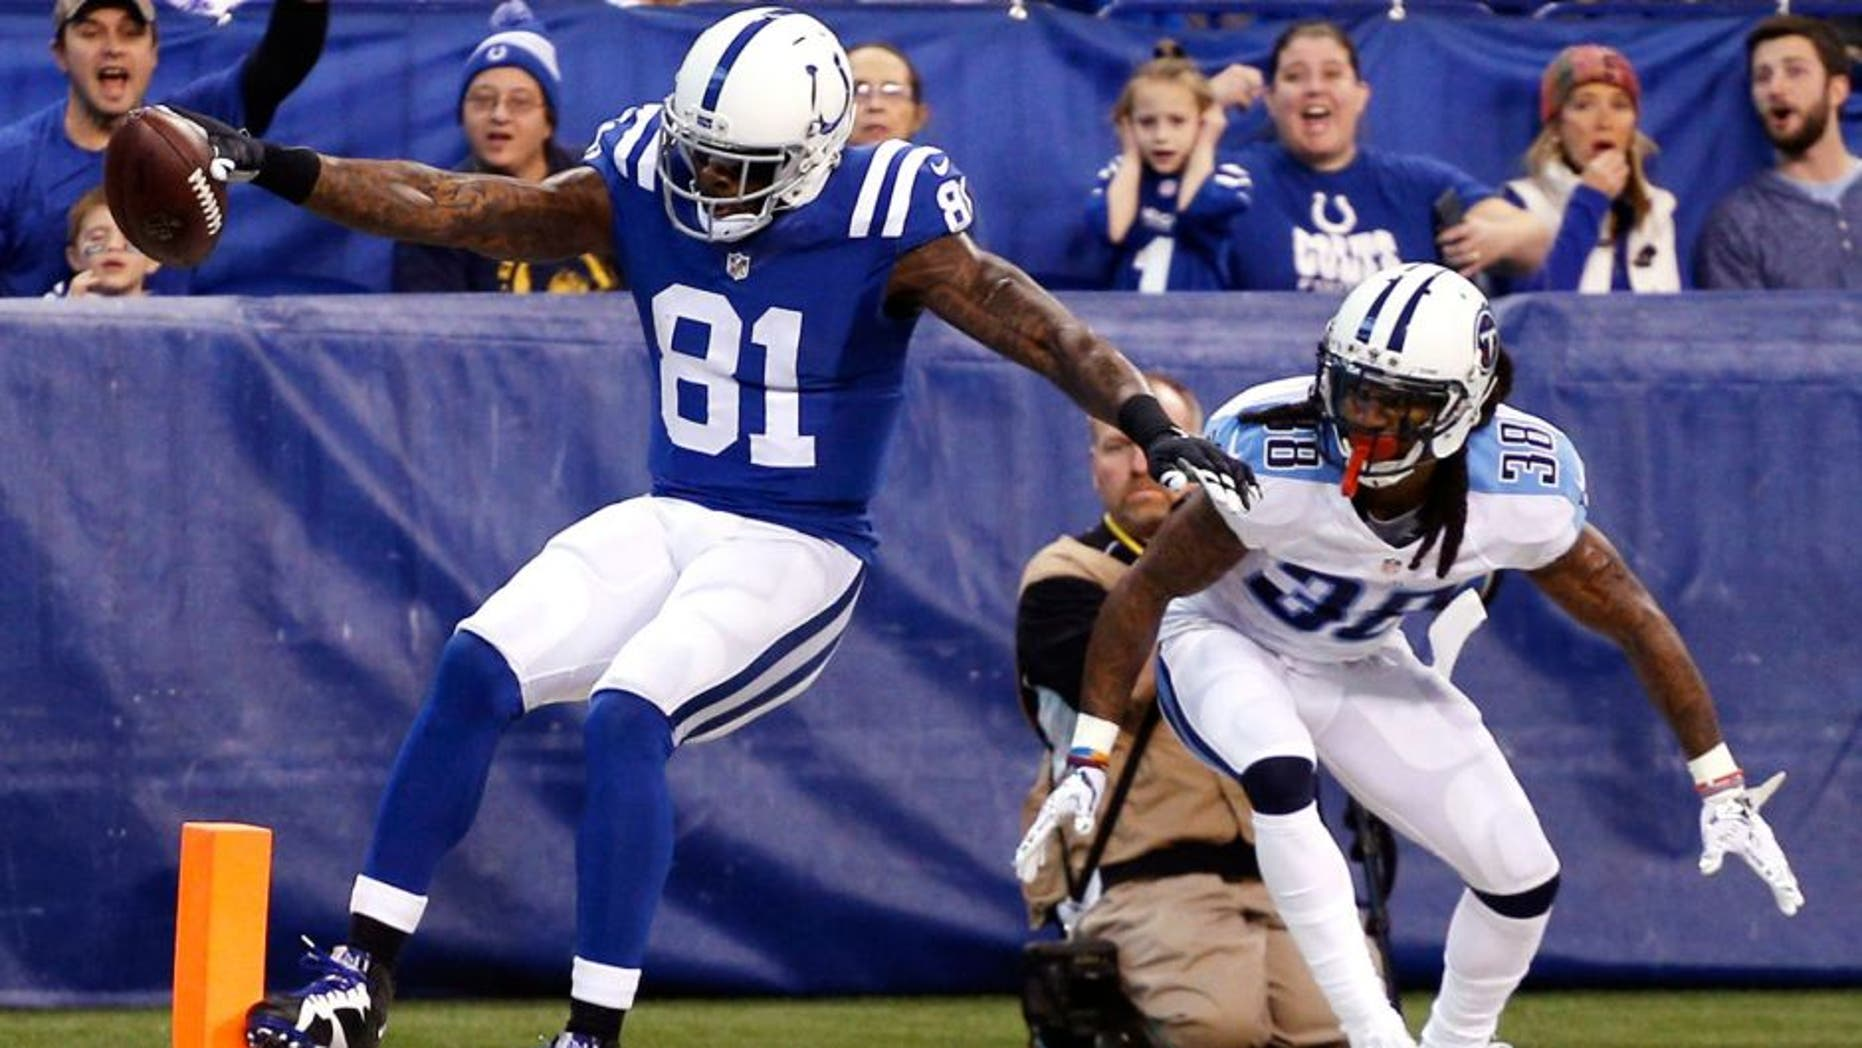 Jan 3, 2016; Indianapolis, IN, USA; Indianapolis Colts wide receiver Andre Johnson (81) catches a pass for a touchdown against Tennessee Titans cornerback B.W. Webb (38) at Lucas Oil Stadium. Mandatory Credit: Brian Spurlock-USA TODAY Sports